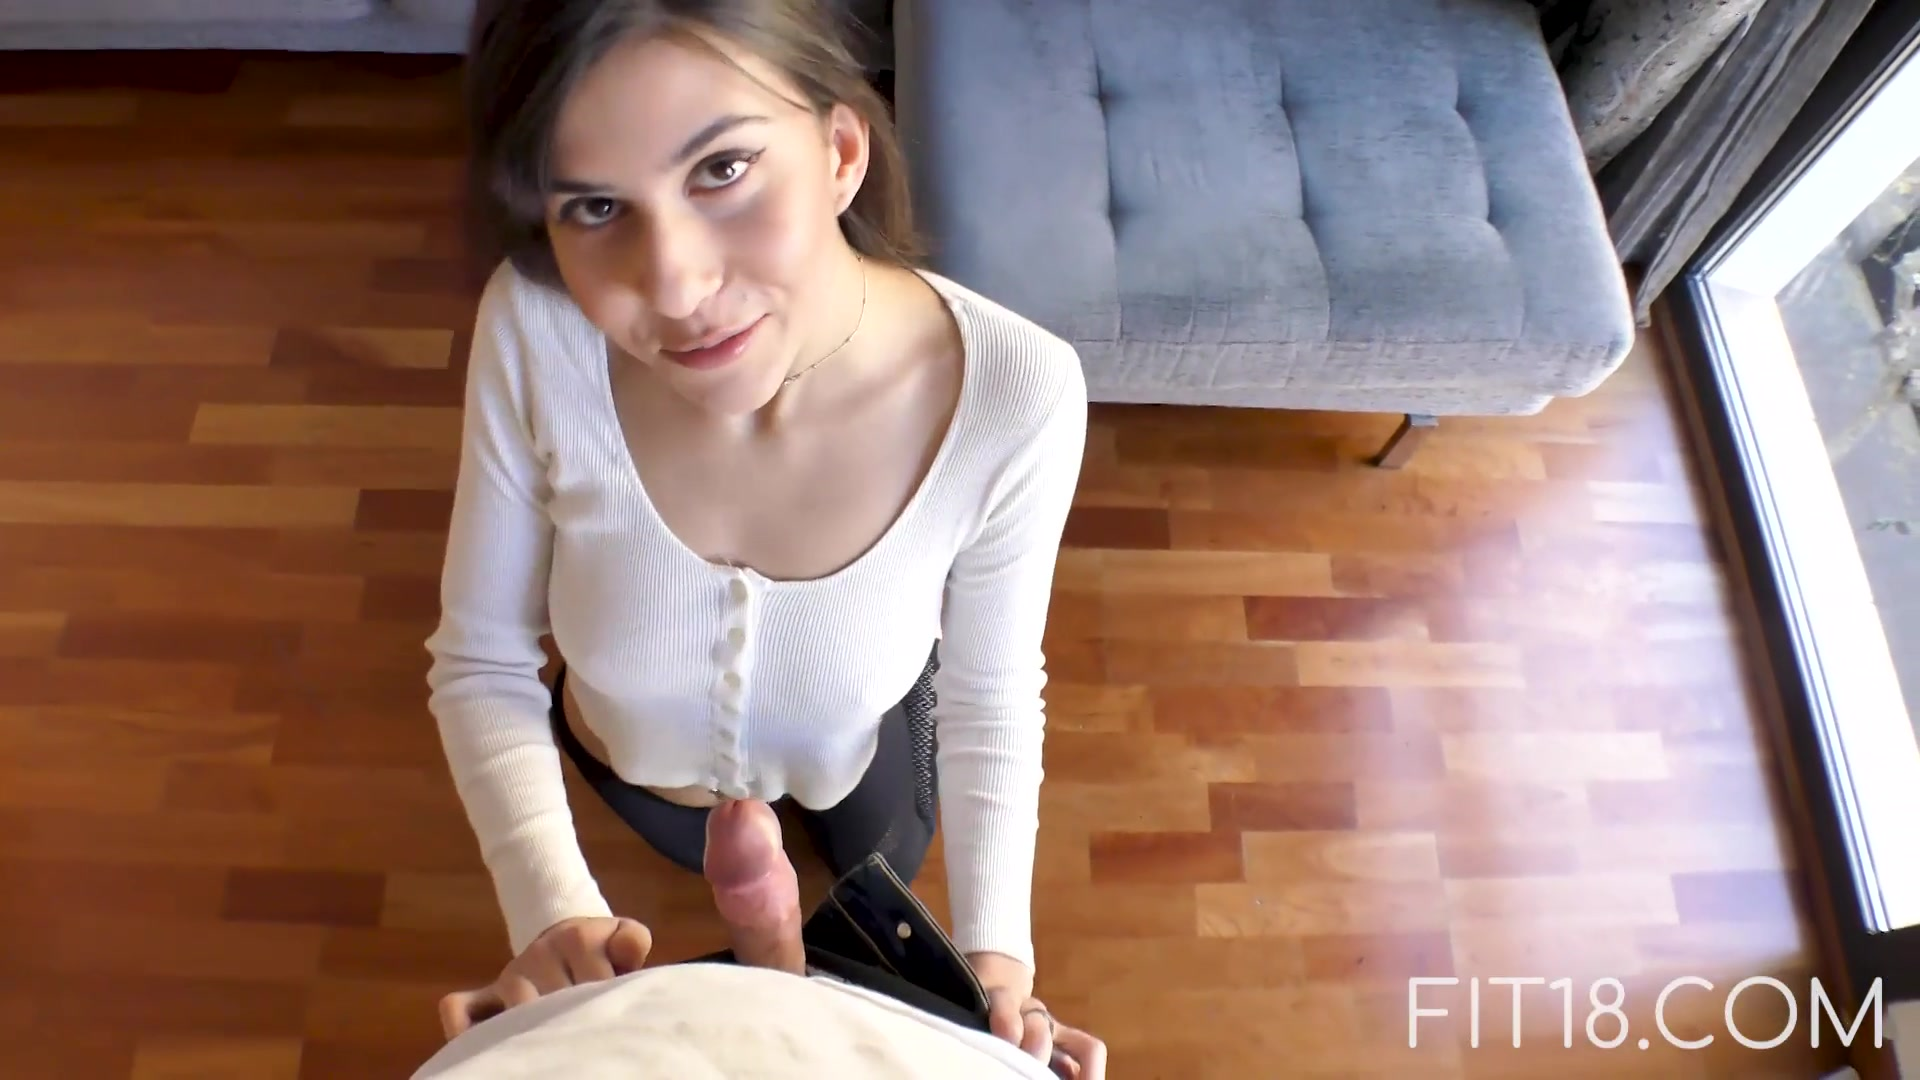 discussion nude shaved handjob penis and facial agree, very